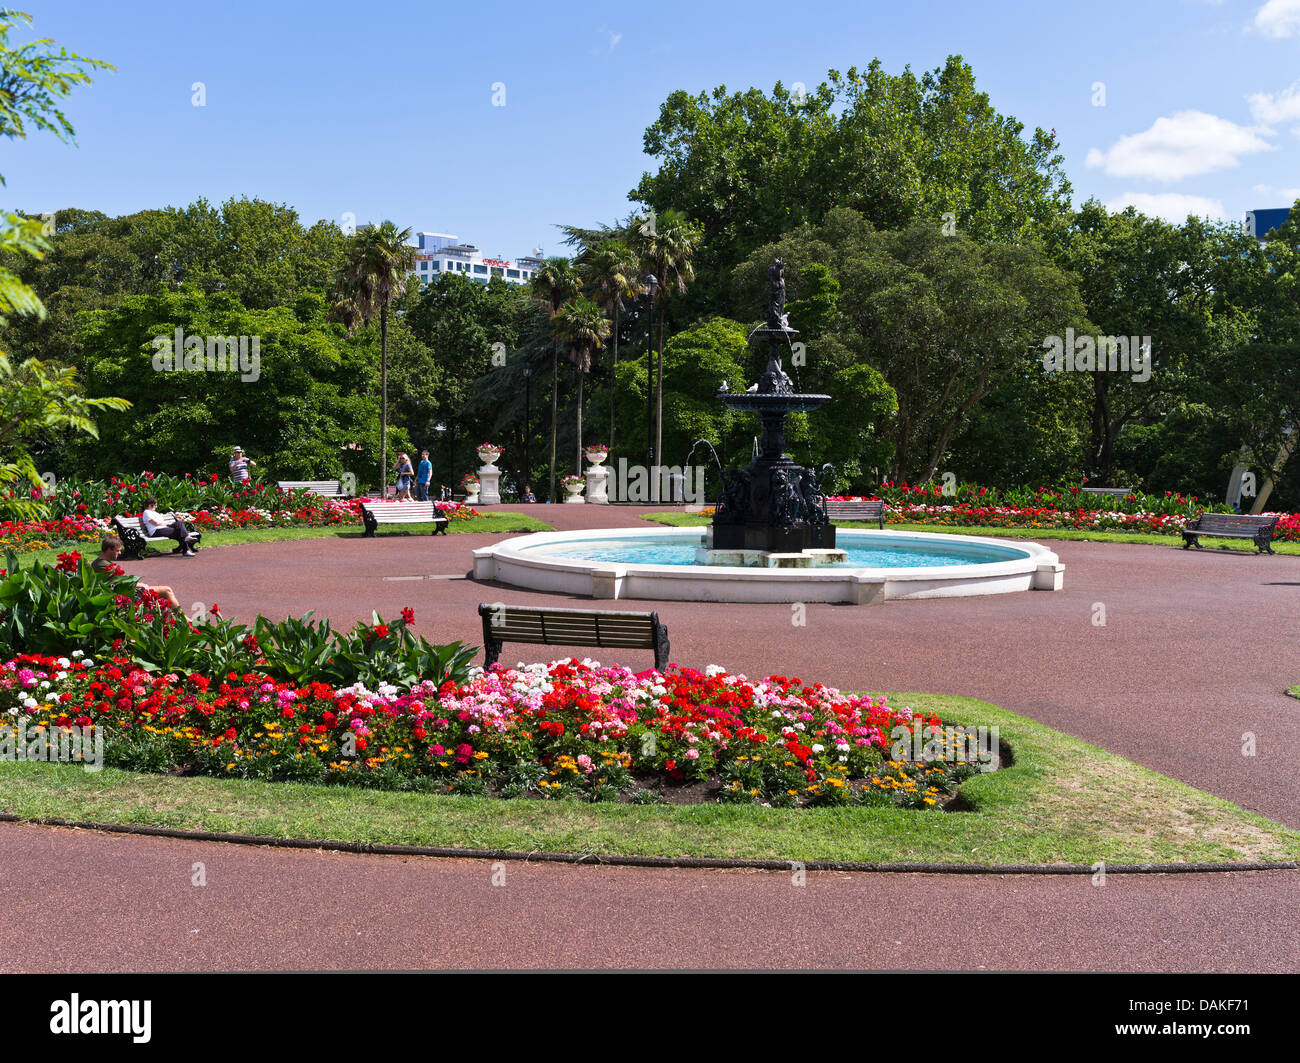 Water fountains auckland -  Dh Albert Park Auckland New Zealand People Sitting Bench Relaxing Fountain Pool Flower Garden Stock